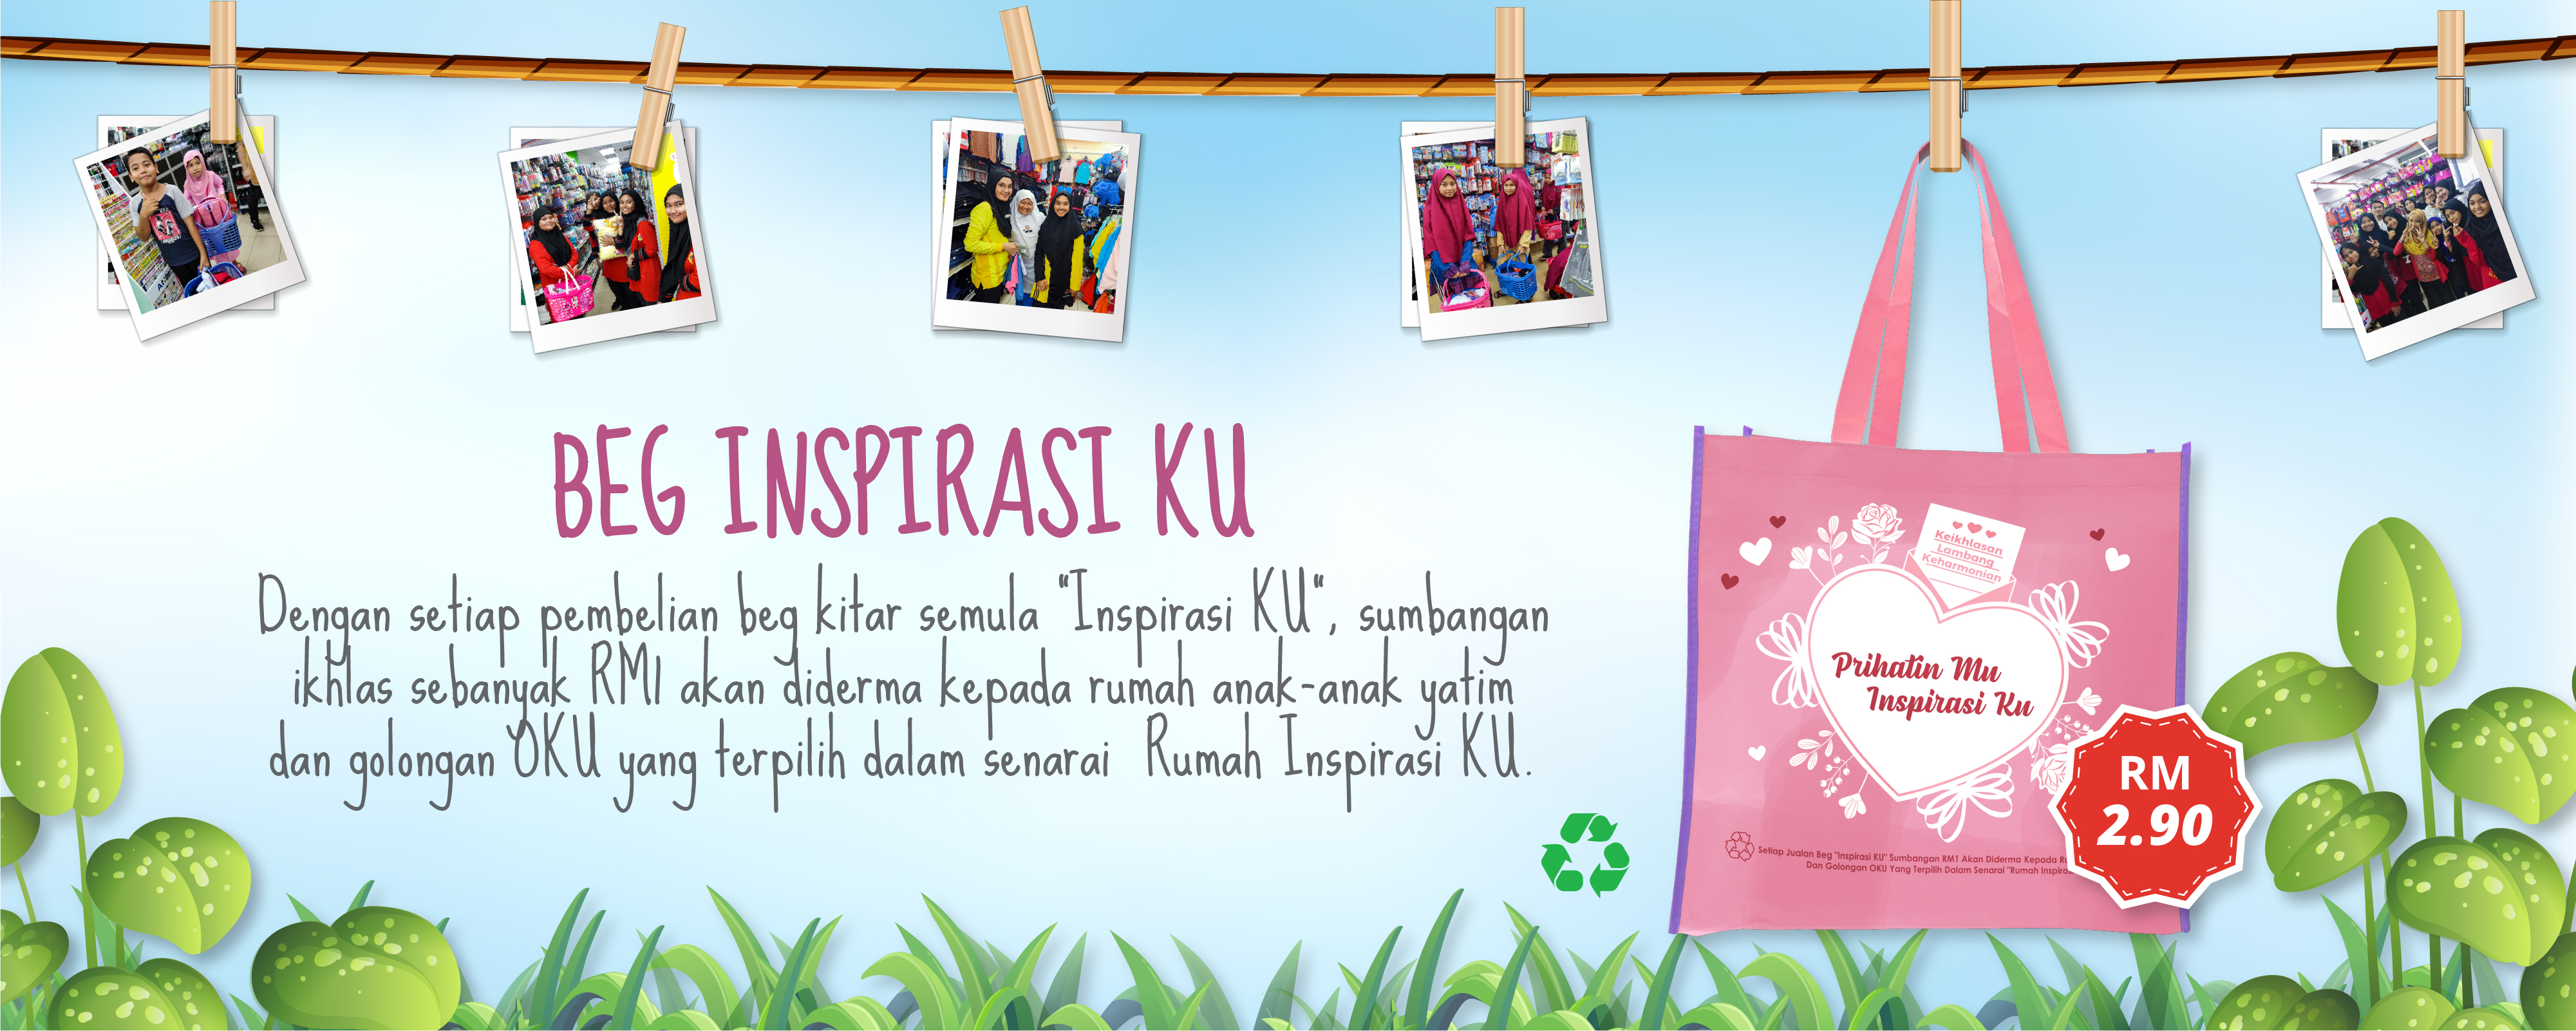 Beg Inspirasi KU 2020-1 Pink mix Purple